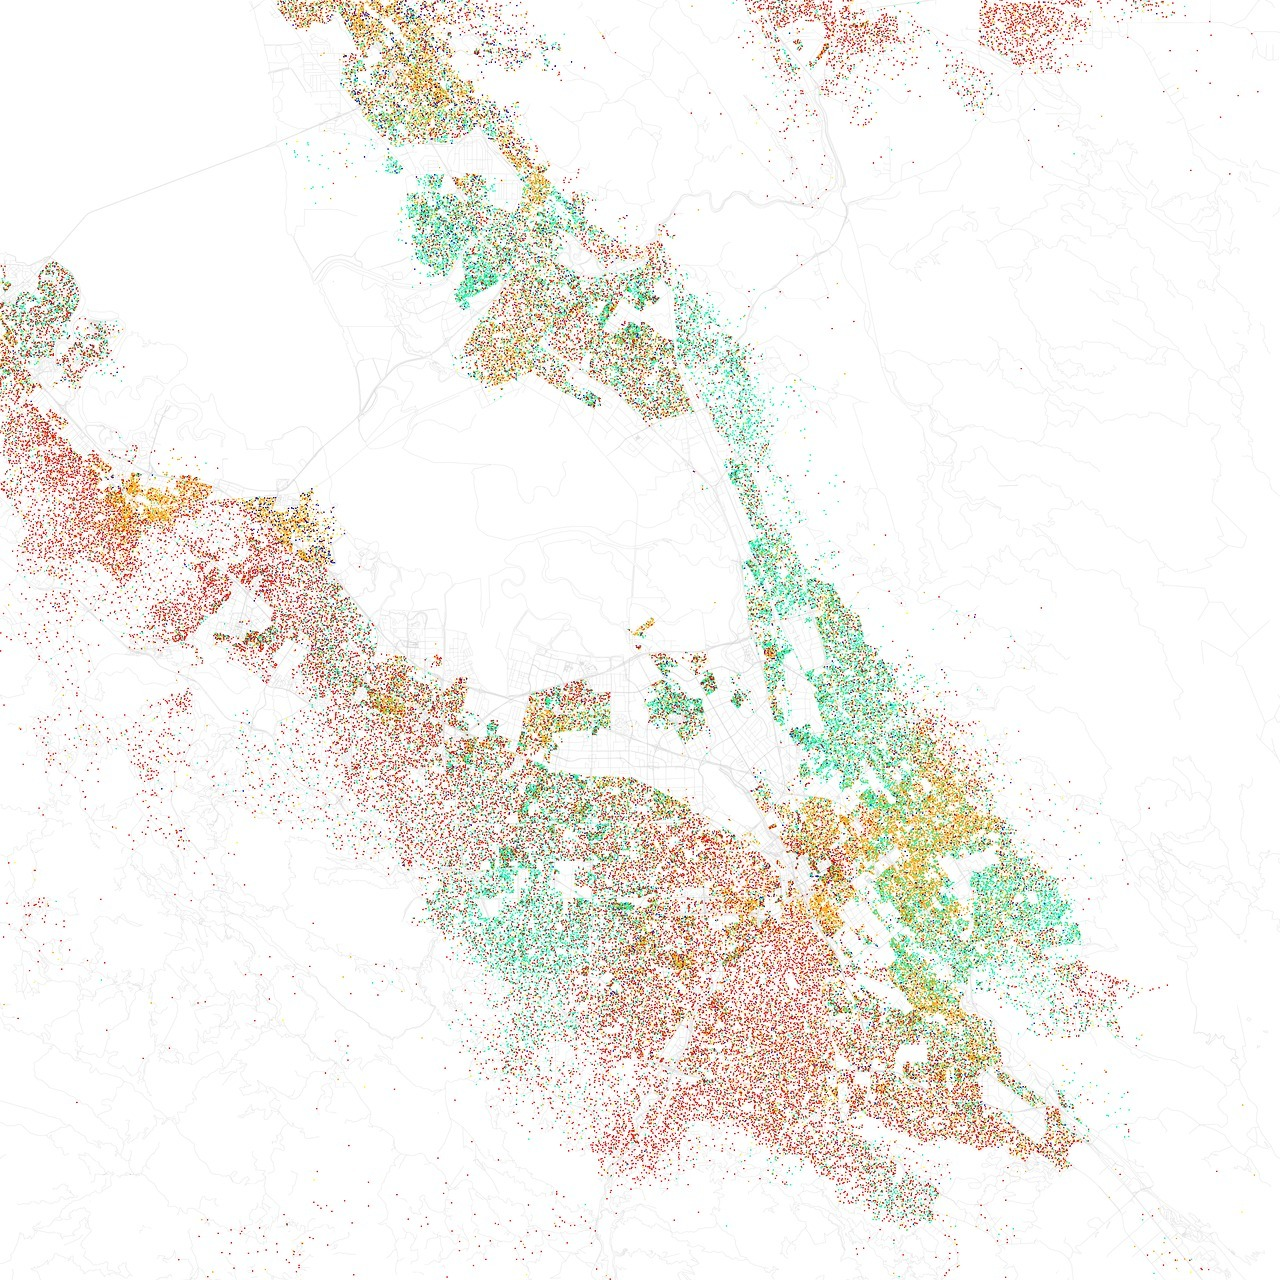 Eric Fischer's map of race and ethnicity in the South Bay, based on 2010 census data. Fischer has also created similar maps for about 100 other metropolitan areas. Red = non-Hispanic white, yellow = Hispanic, light green = Asian, blue = African-American. Each dot is 25 residents.